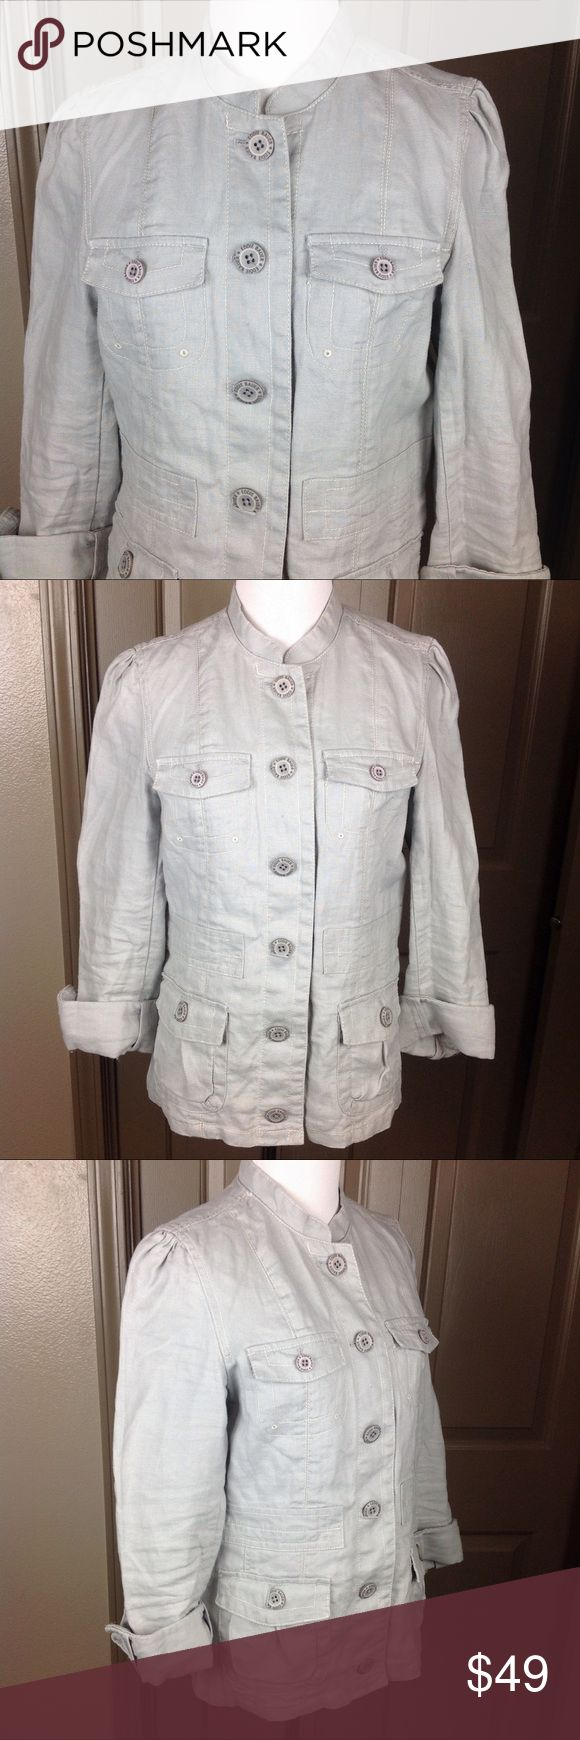 Eddie Bauer Med 100% Linen Safari Jacket Silver Great Condition Eddie Bauer Med 100% Linen Safari Jacket Silver button Down 4 Pocket adjustable Sleeves 24 inch length 19 inch across bust Eddie Bauer Jackets & Coats Utility Jackets